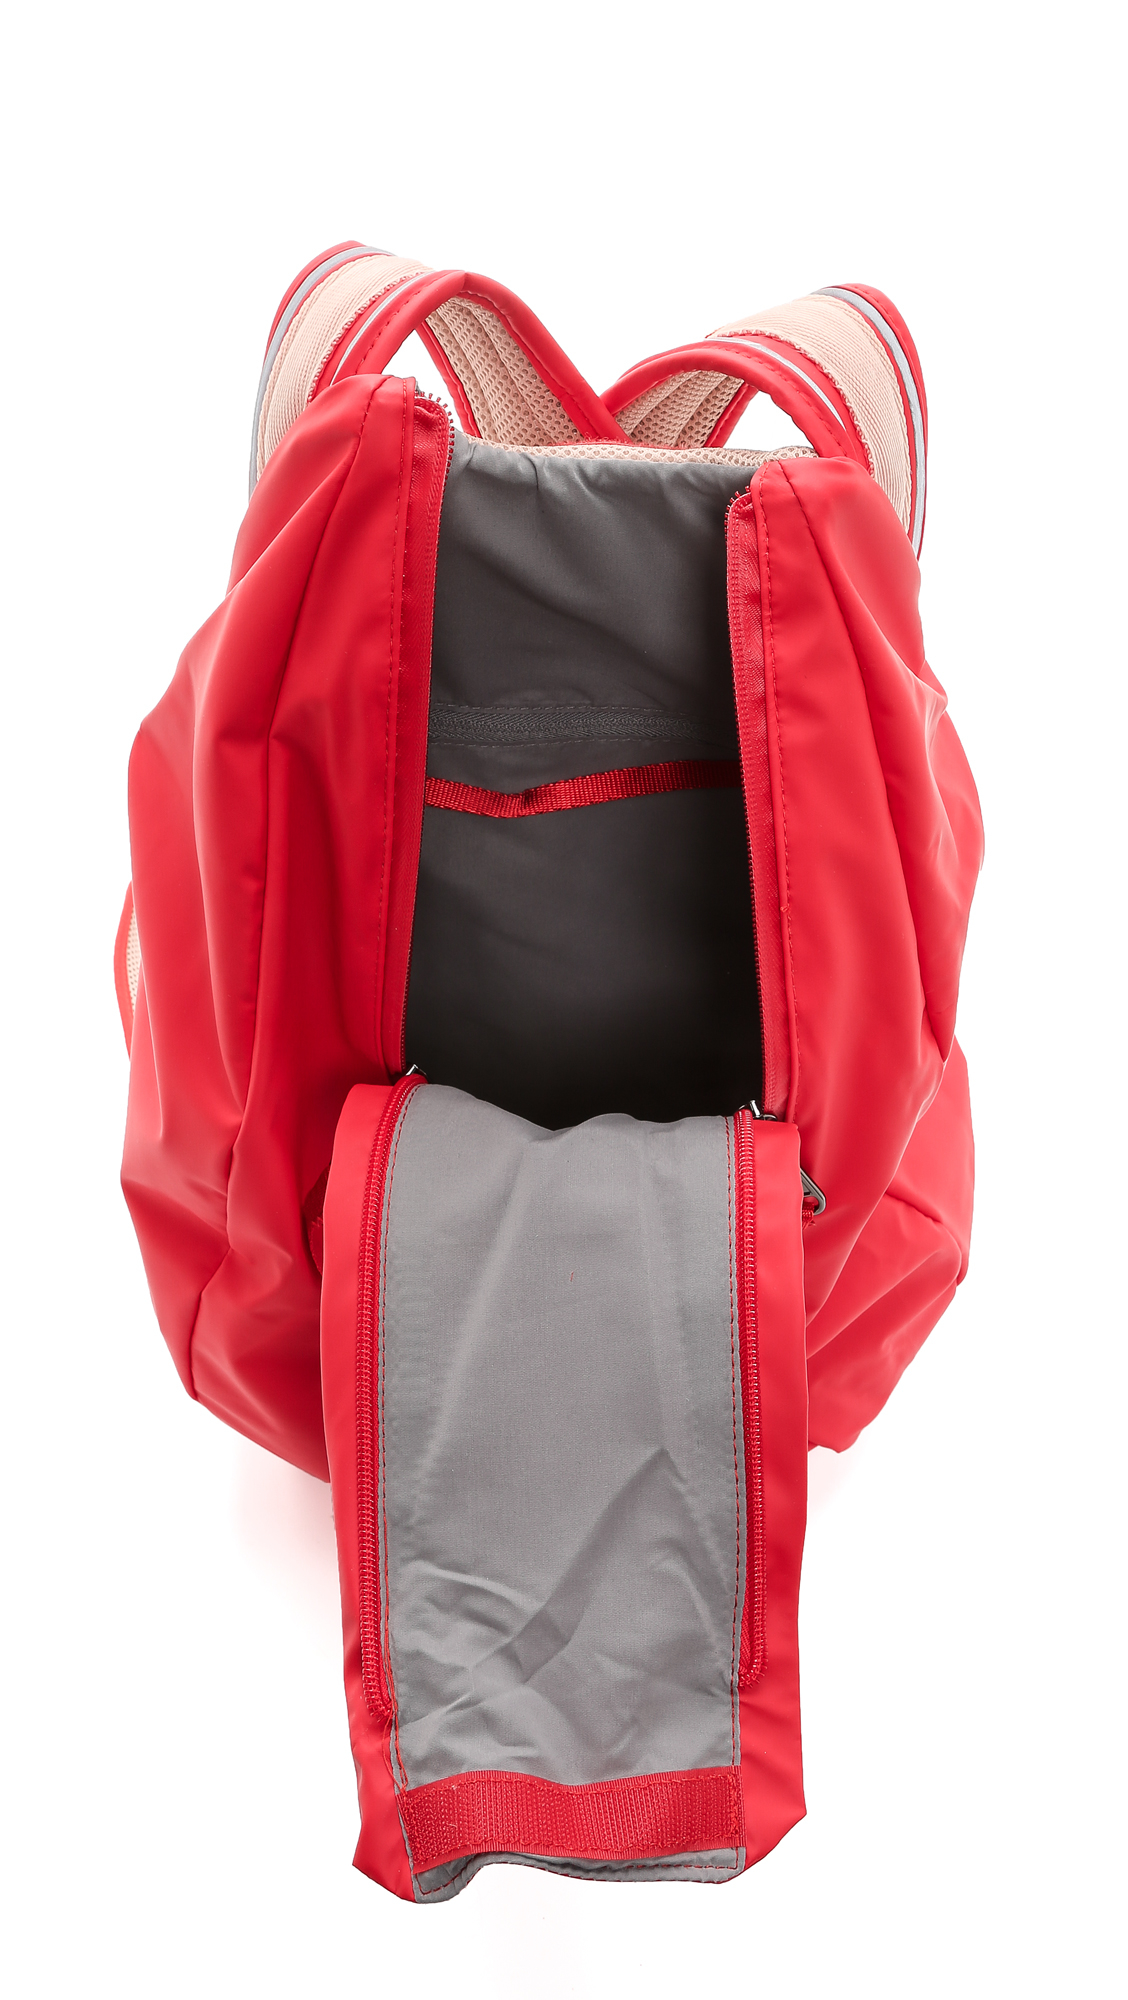 863d3a486a Lyst - adidas By Stella McCartney Running Cycling Backpack - Scarlet ...